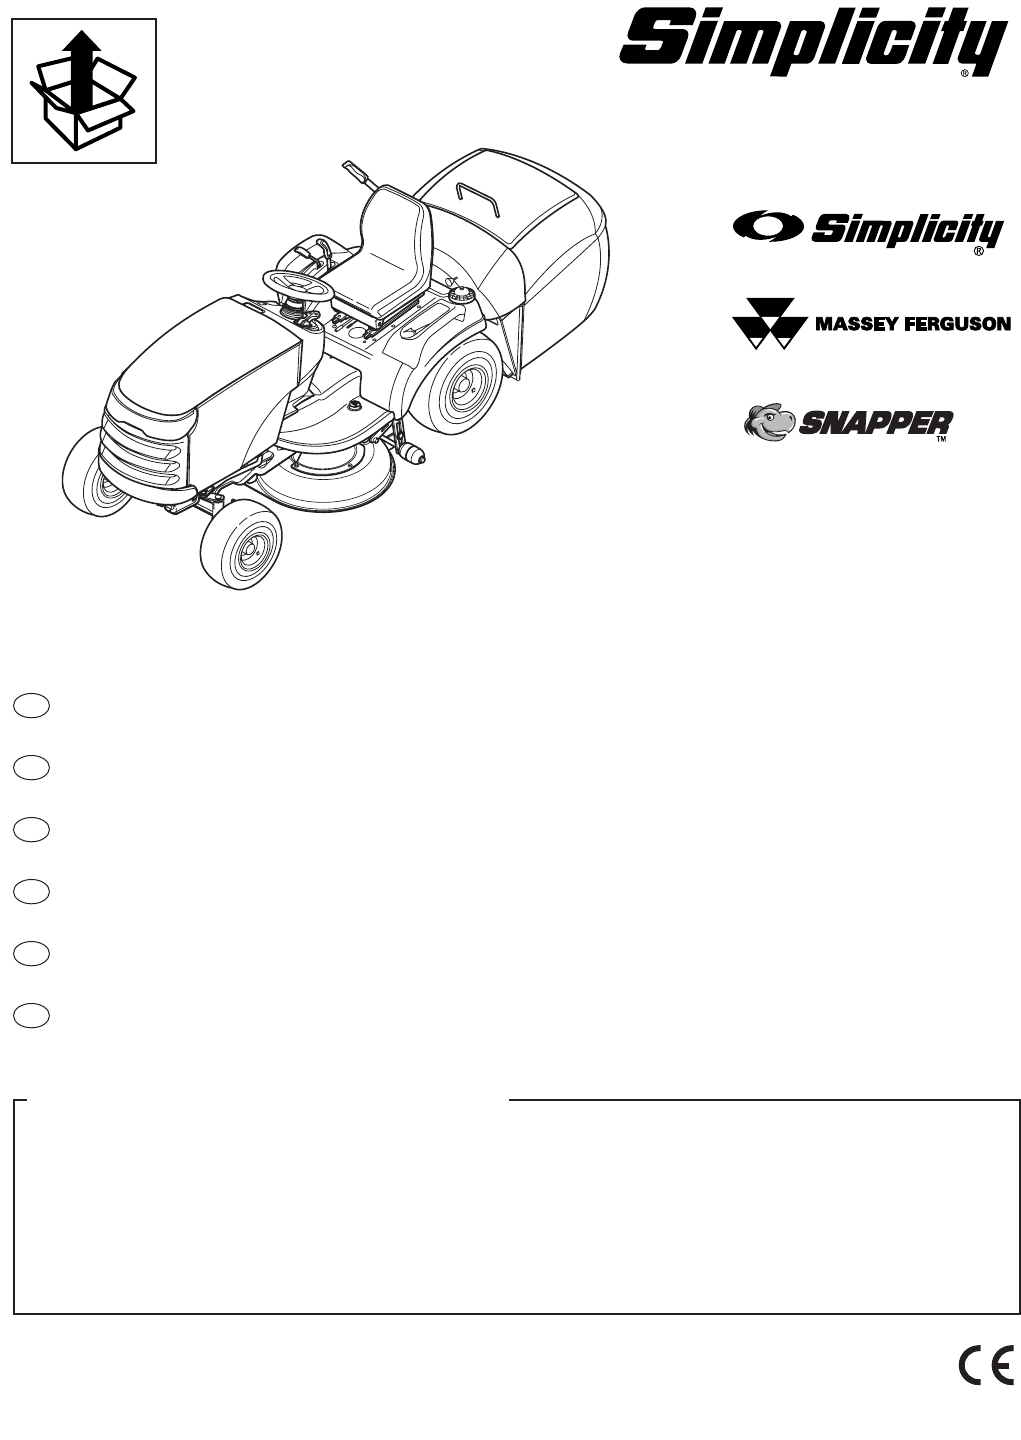 Simplicity Manufacturing Lawn Mower 2400 User Guide